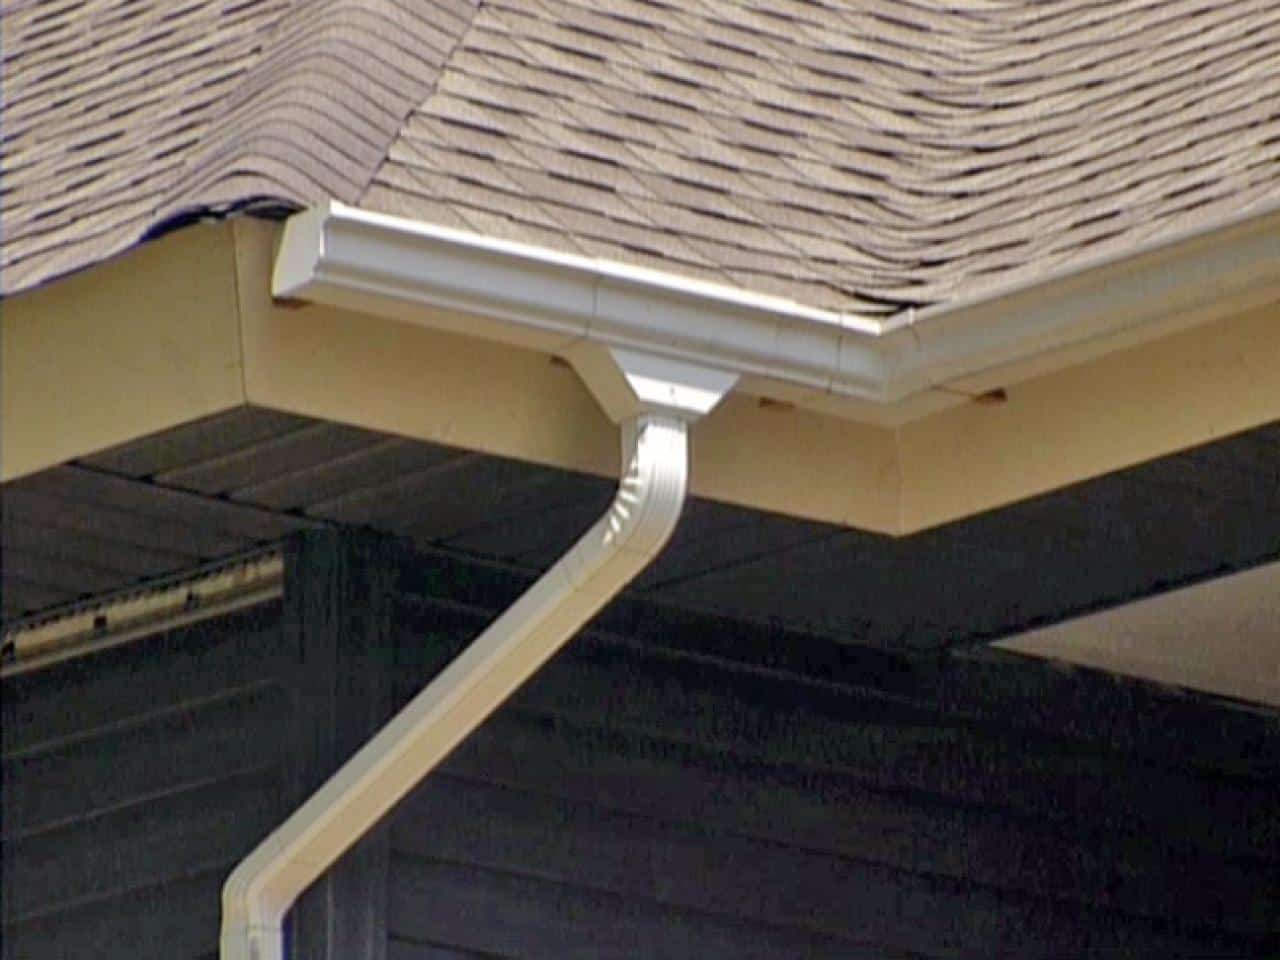 How To Install Gutters And Downspouts The Housing Forum